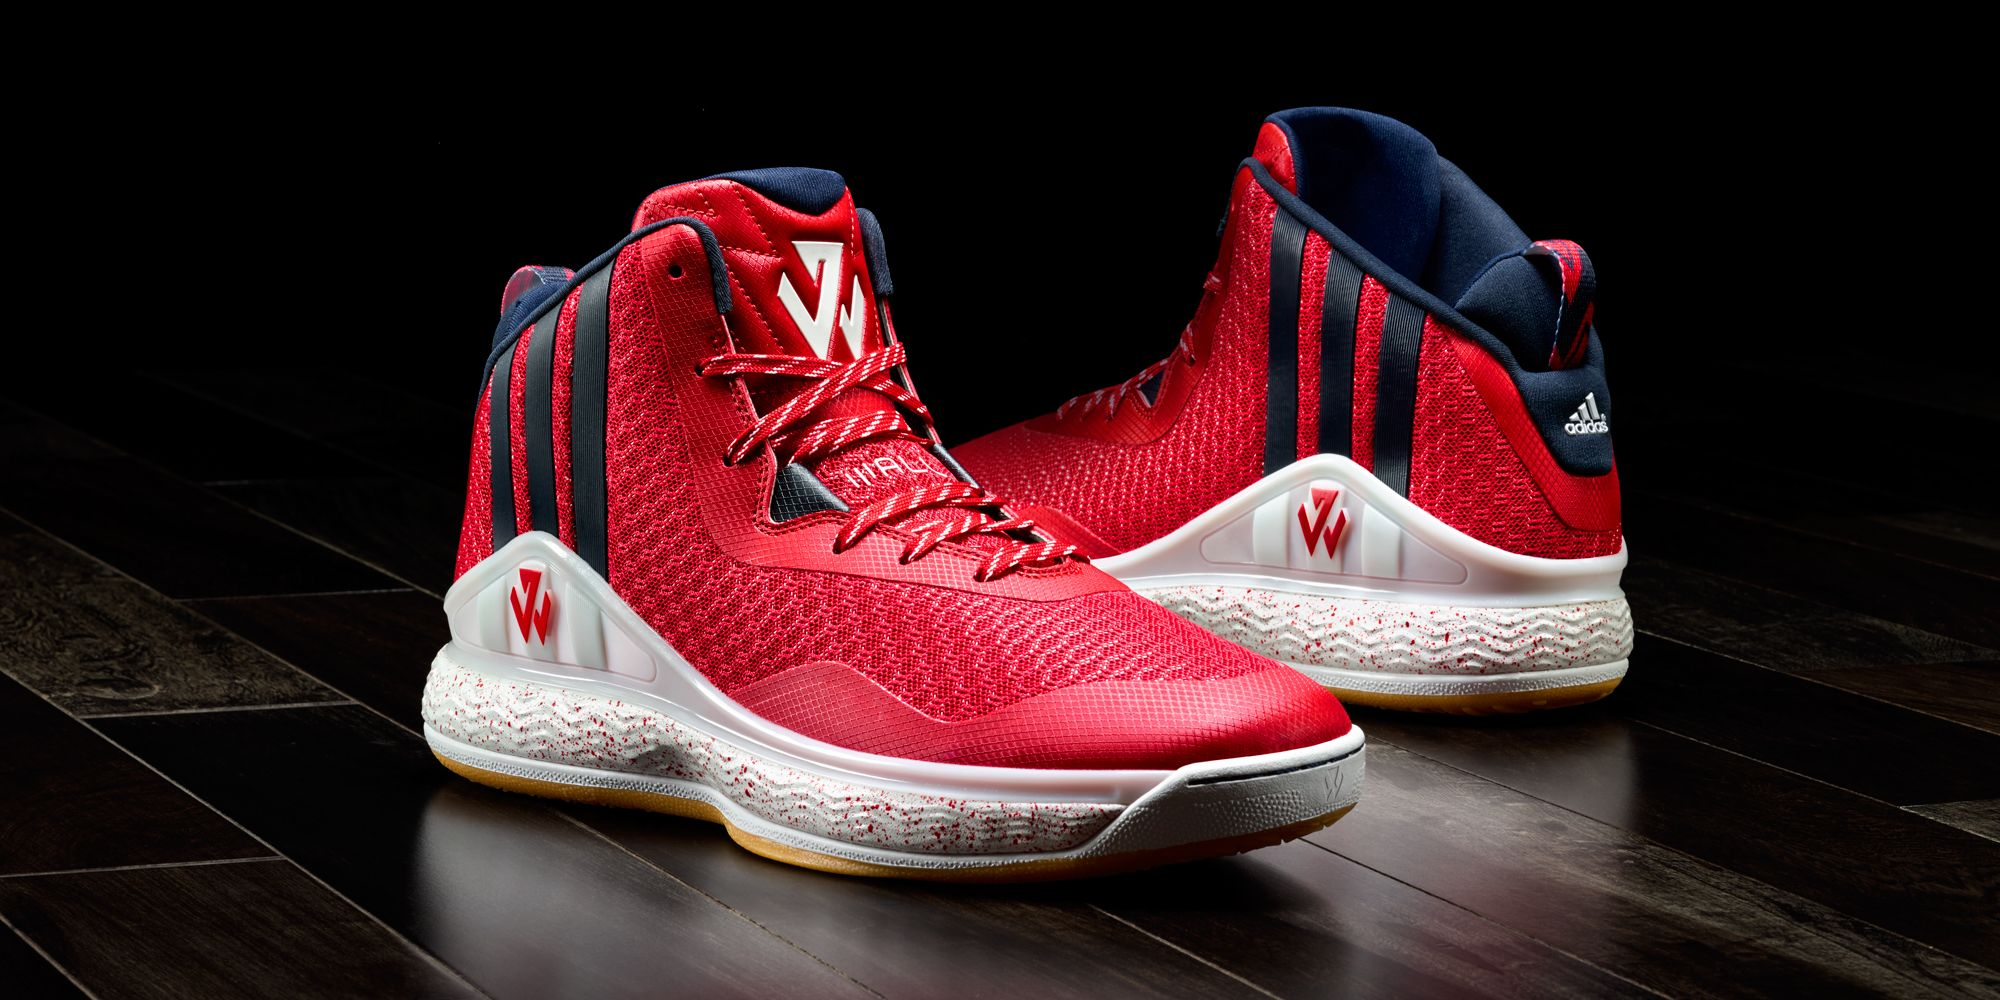 info for efe5e 03ff3 release date adidas j wall 1 red blue 9b263 c2d53